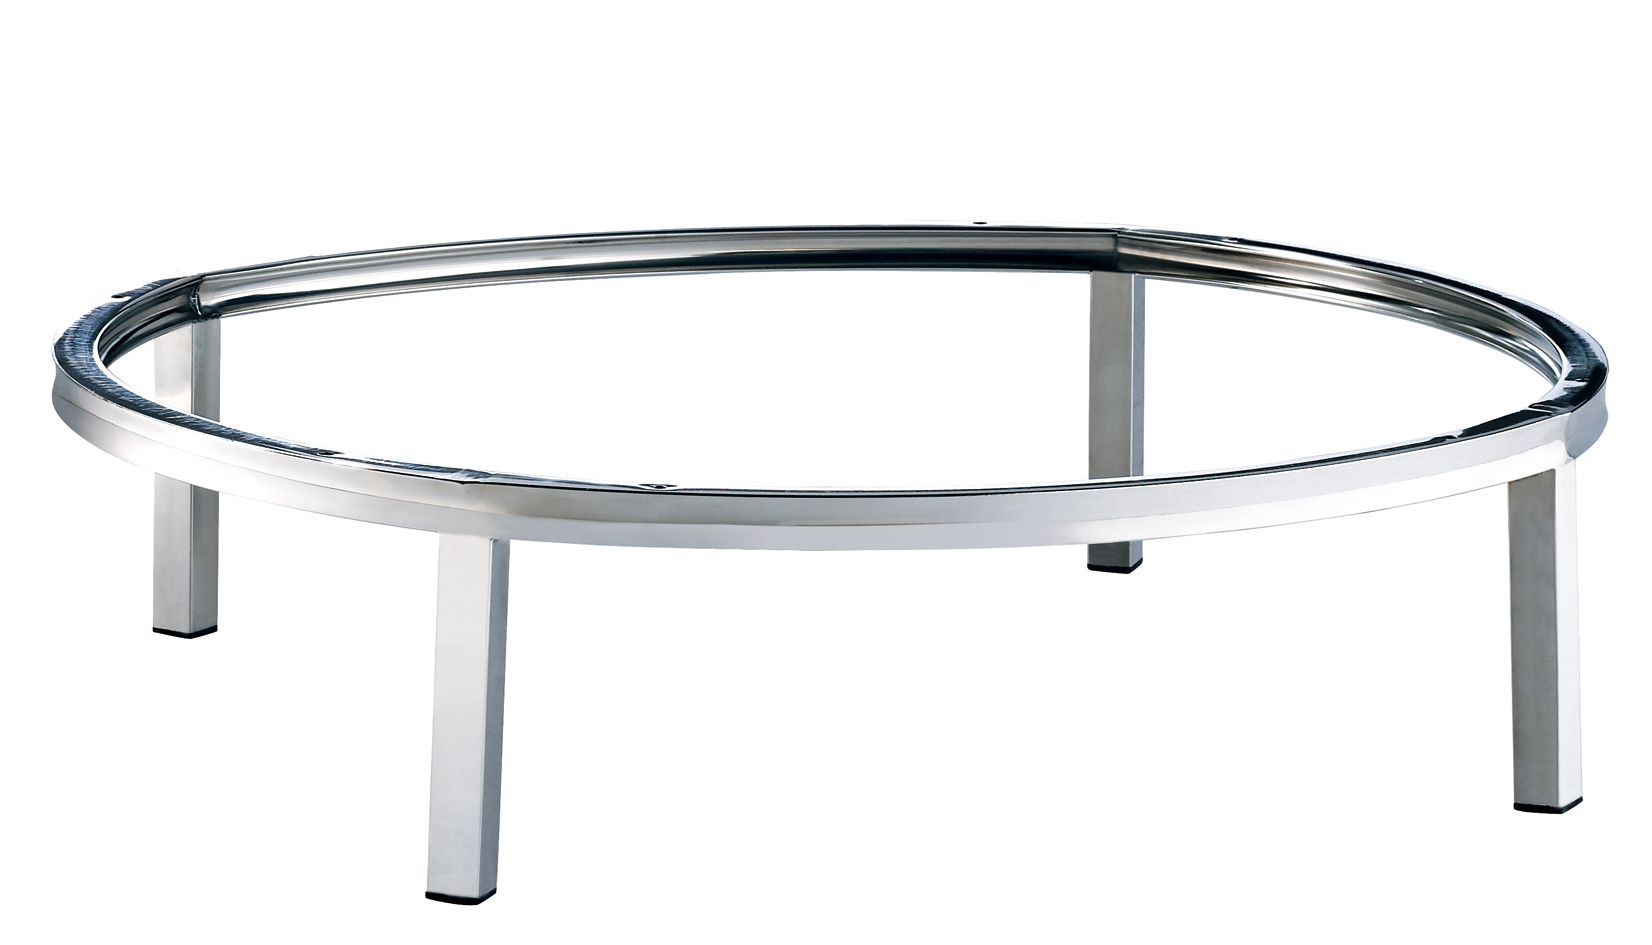 SHIMING FURNITURE MS-3123 coffee table stainless steel frame